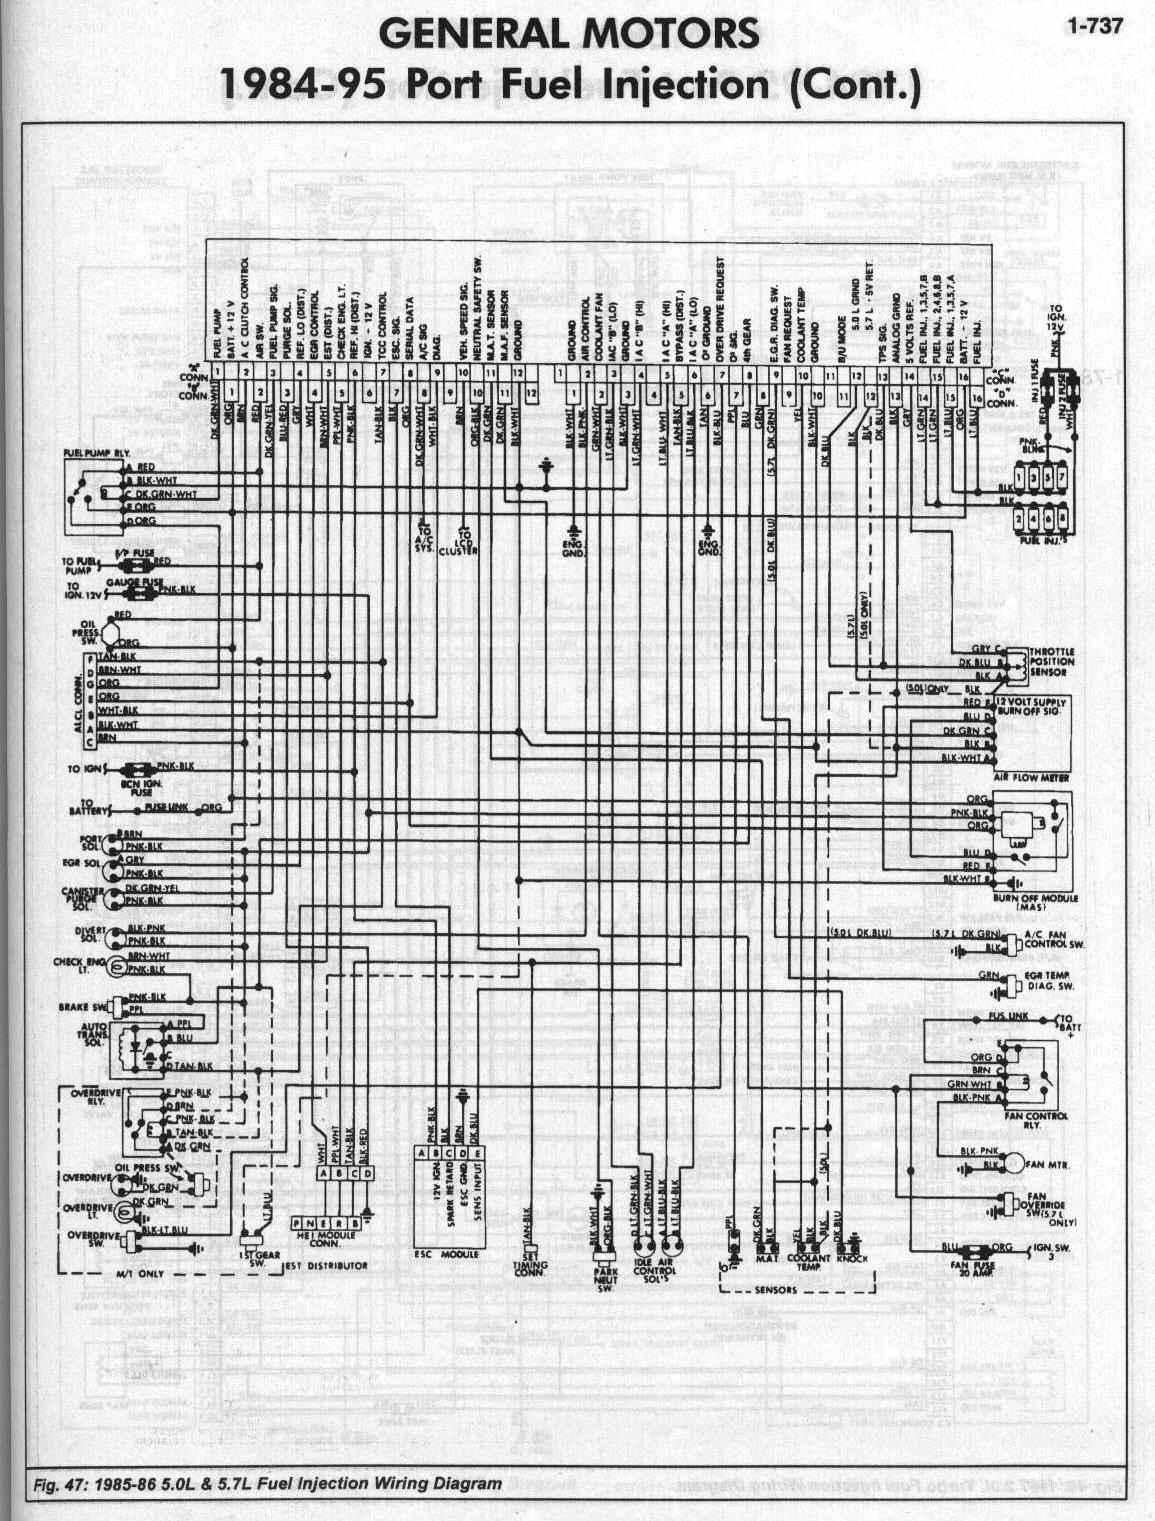 Gm Aldl Wiring Diagram Library E36 Maf 85 Ecm Mas Copy1 Copy2 86